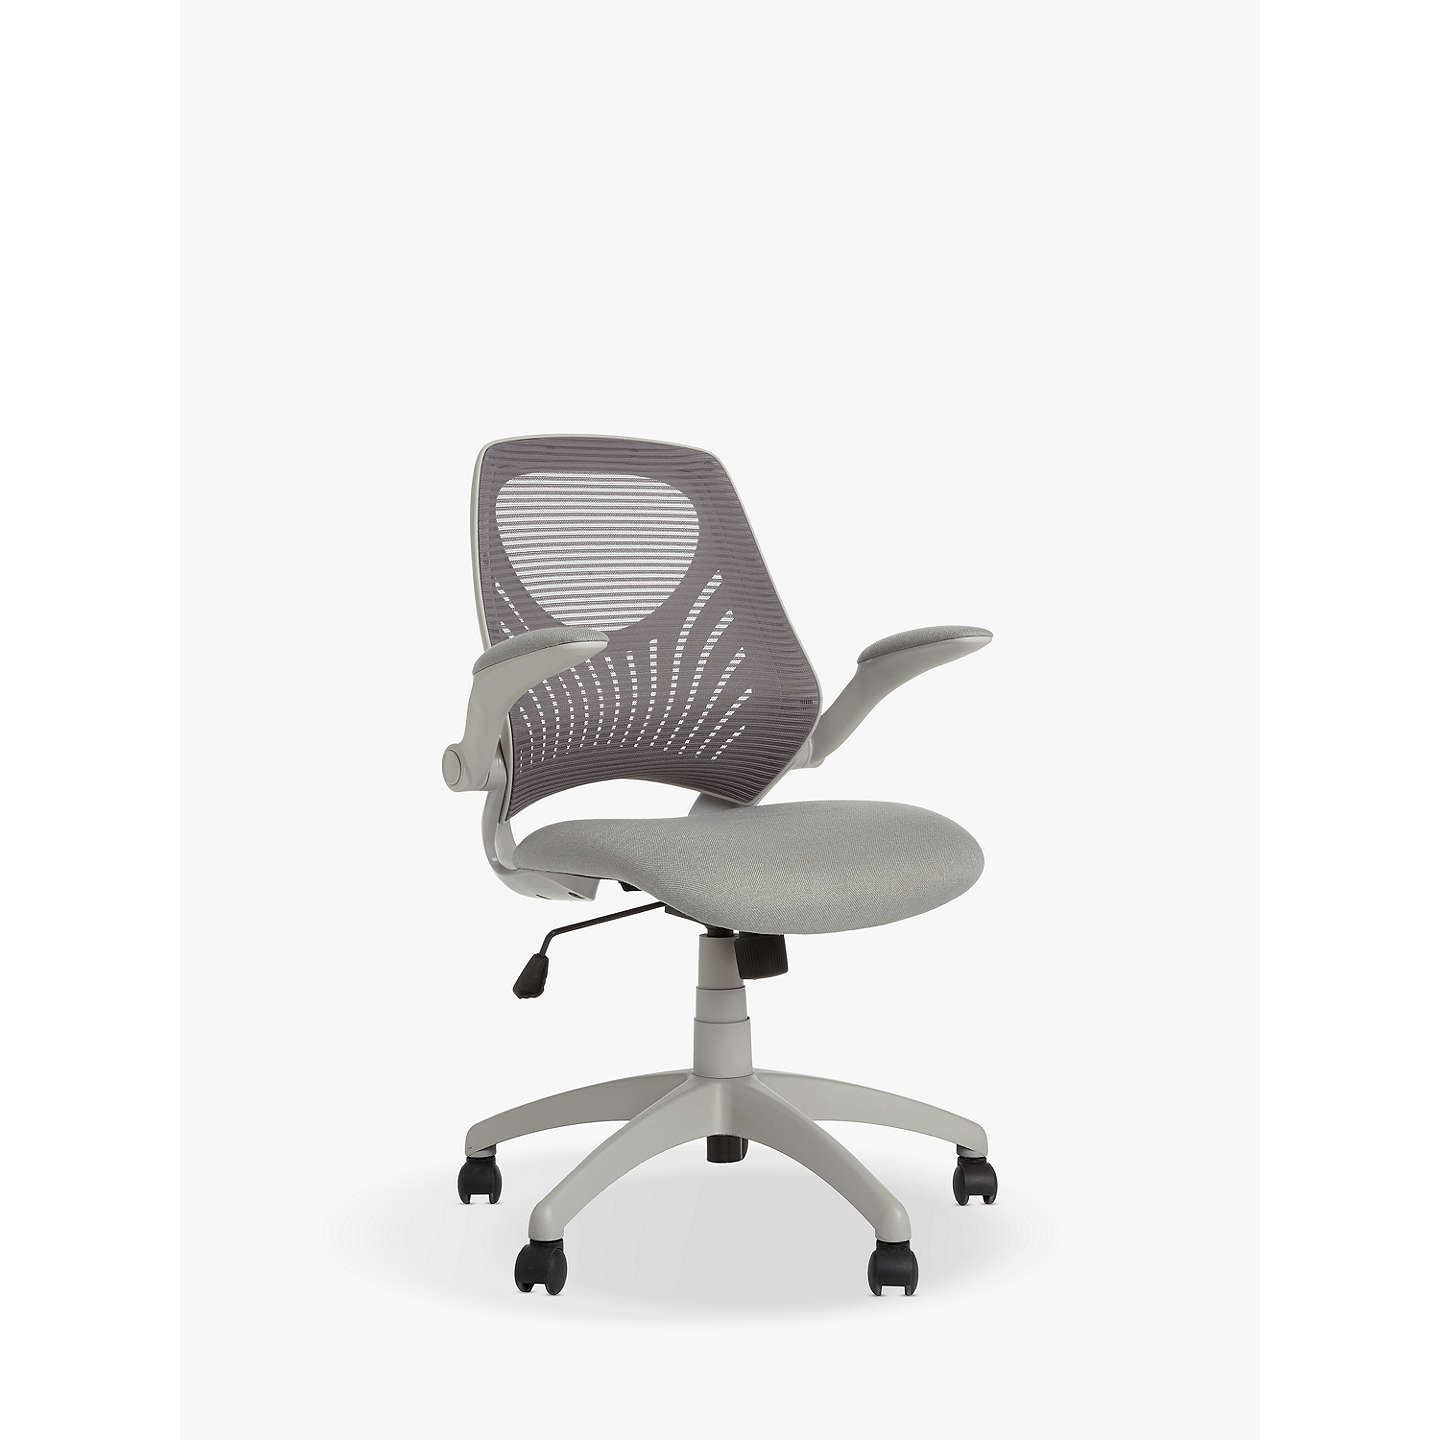 comfort office chair. BuyHouse By John Lewis Hinton Office Chair, Grey Online At Johnlewis.com Comfort Chair